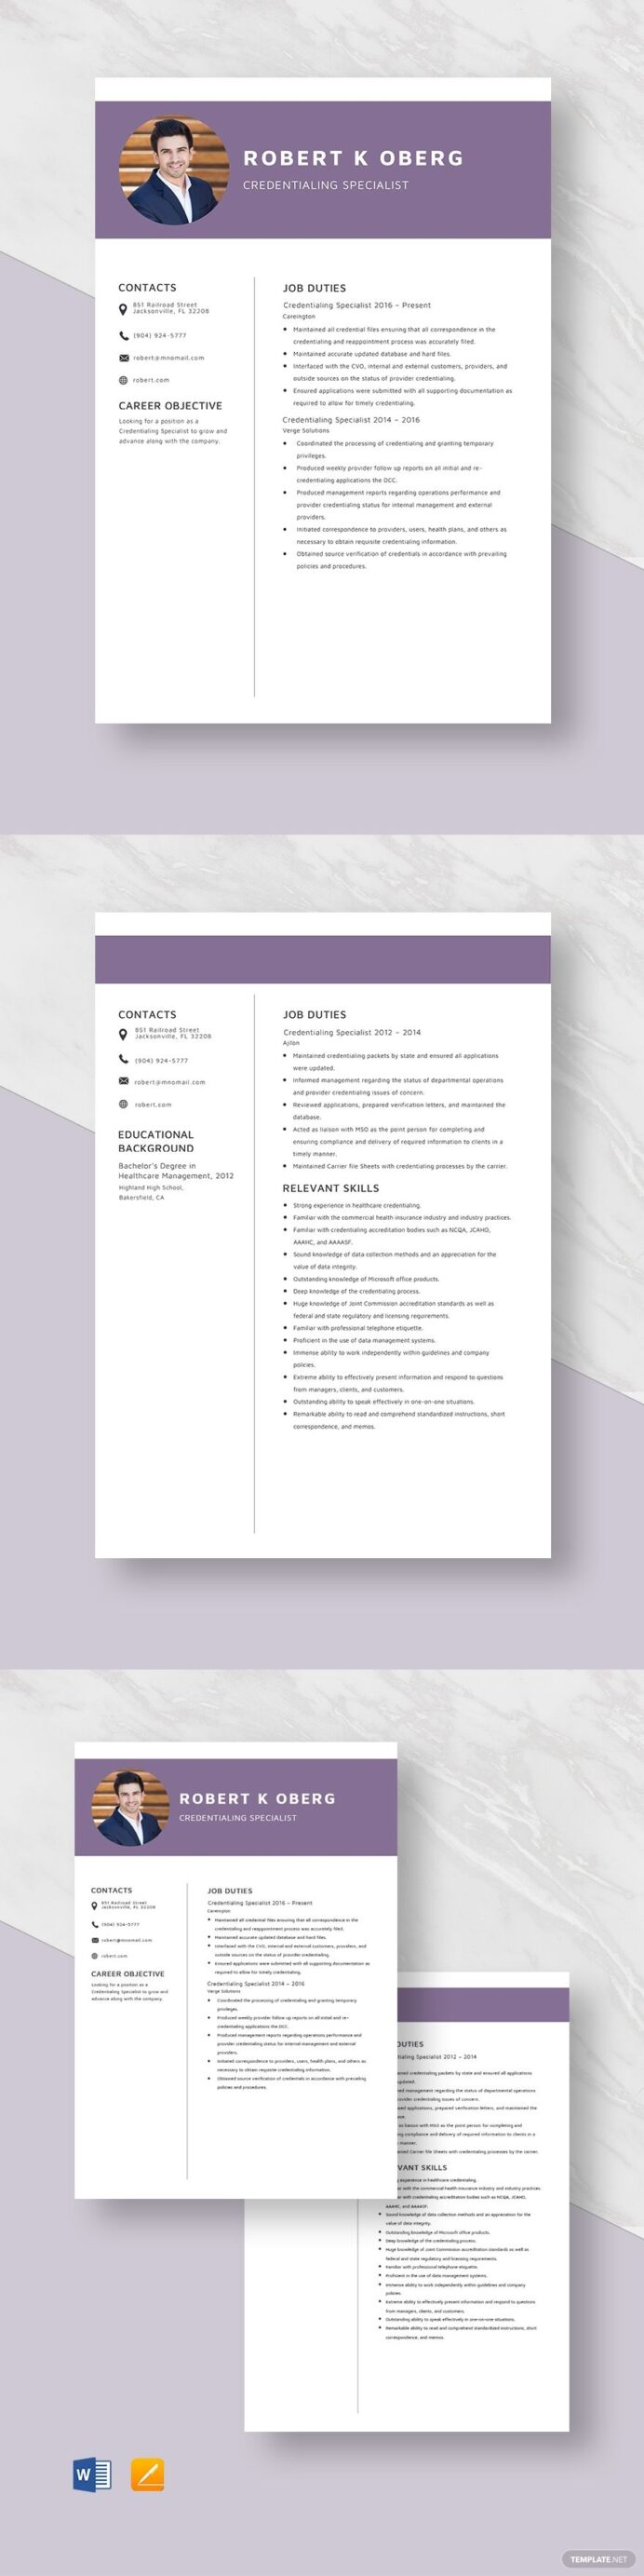 credentialing specialist resume template in illustrator tutorials logo sample sharepoint Resume Credentialing Specialist Resume Sample